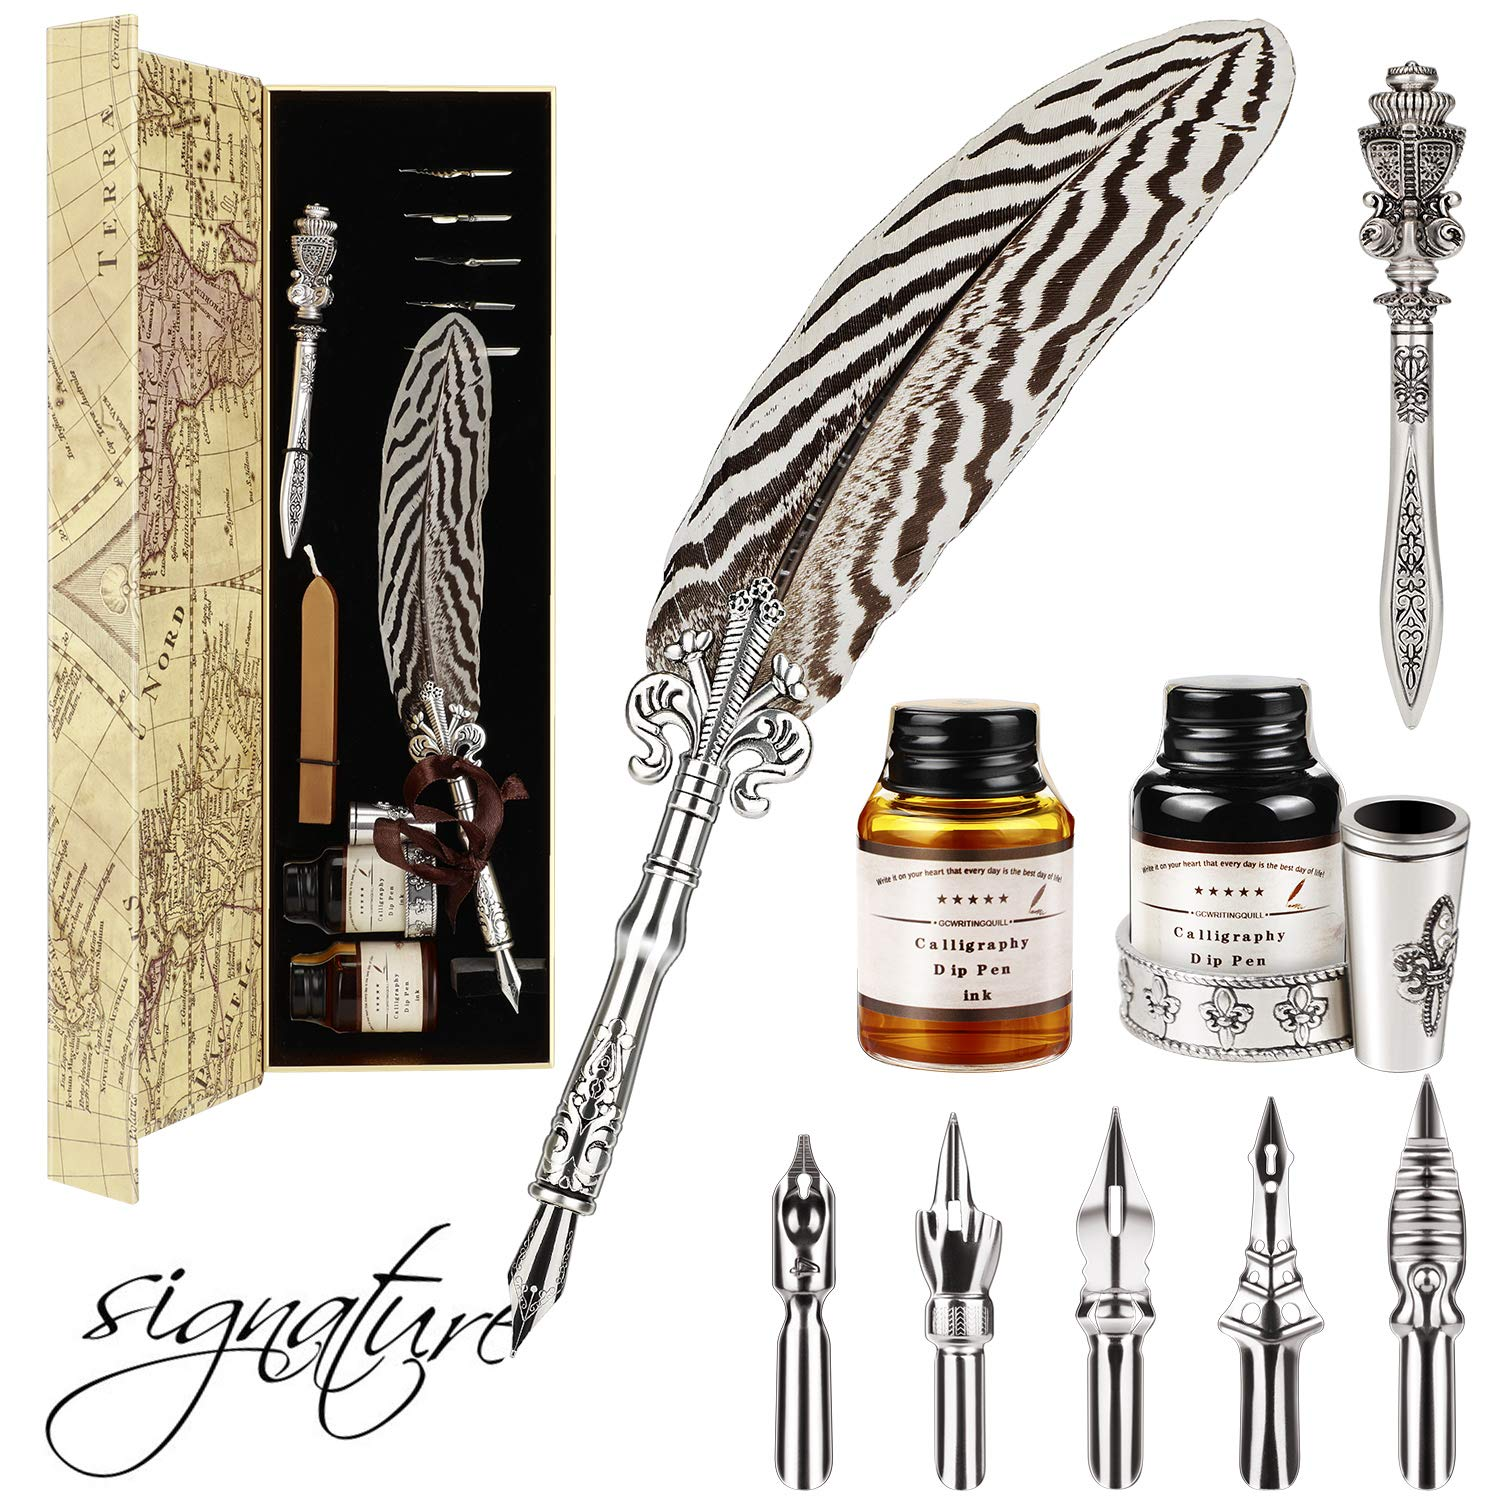 Gcquill Feather Quill Pen Set Dip Pen Antique Feather Pen Writing Quill with 2 Bottle Ink 5 Steel Nibs 1 Envelope Knife Calligraphy Pen with Feather Best Gift for Christmas by EXTSUD